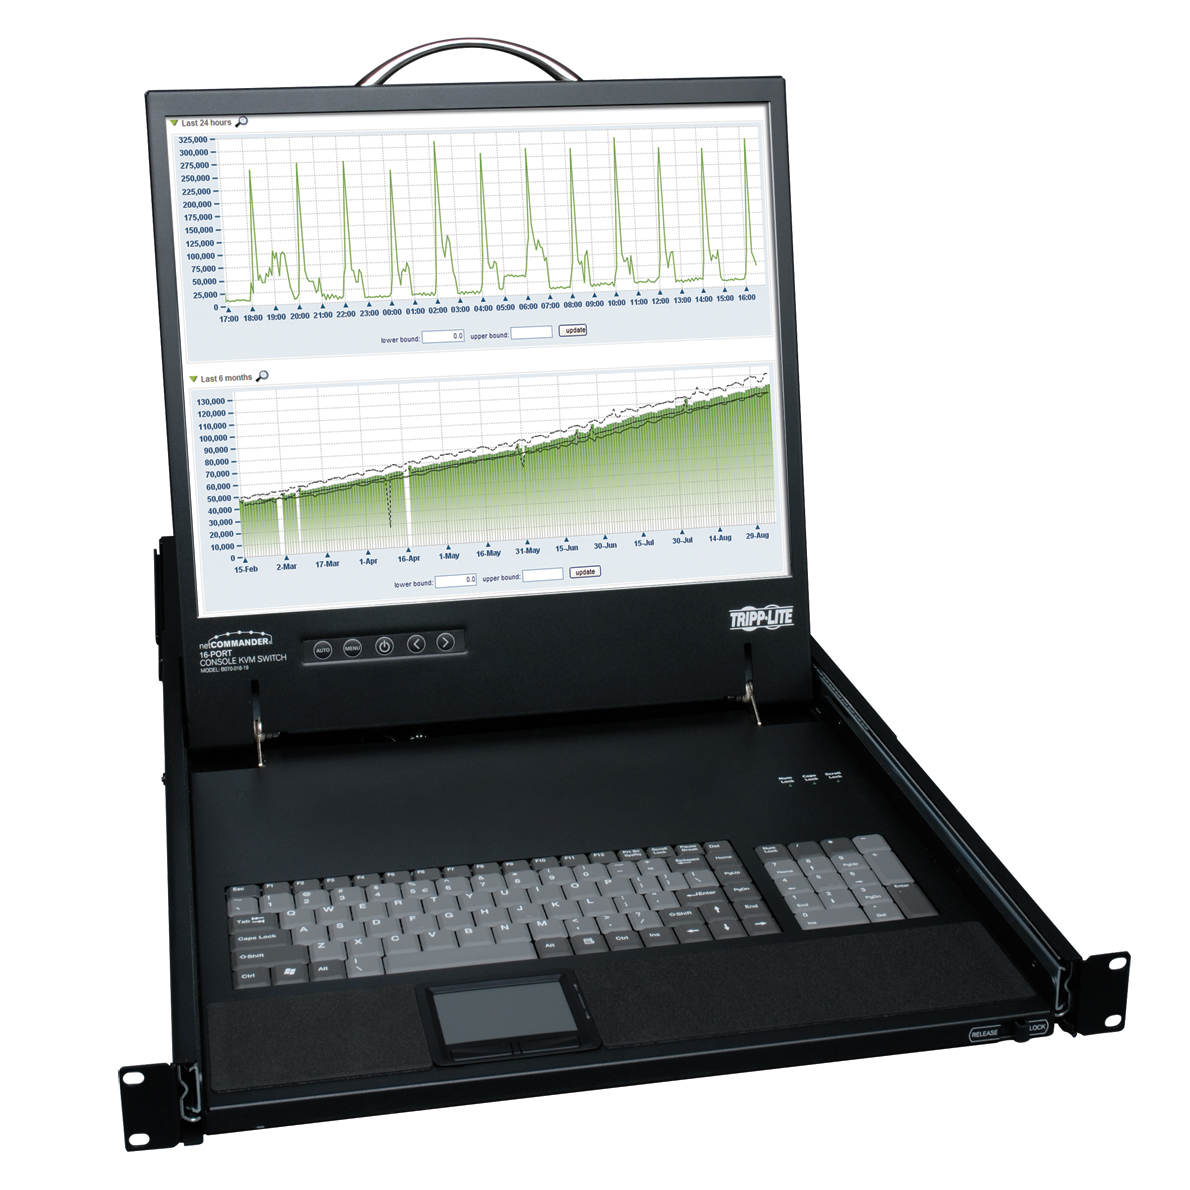 Lite NetCommander Rackmount LCD with KVM Switch - Steel Housing - 16 Computer(s) - 19 inch - 16 x RJ-45 Keyboard/Mouse/Video - 1U Height